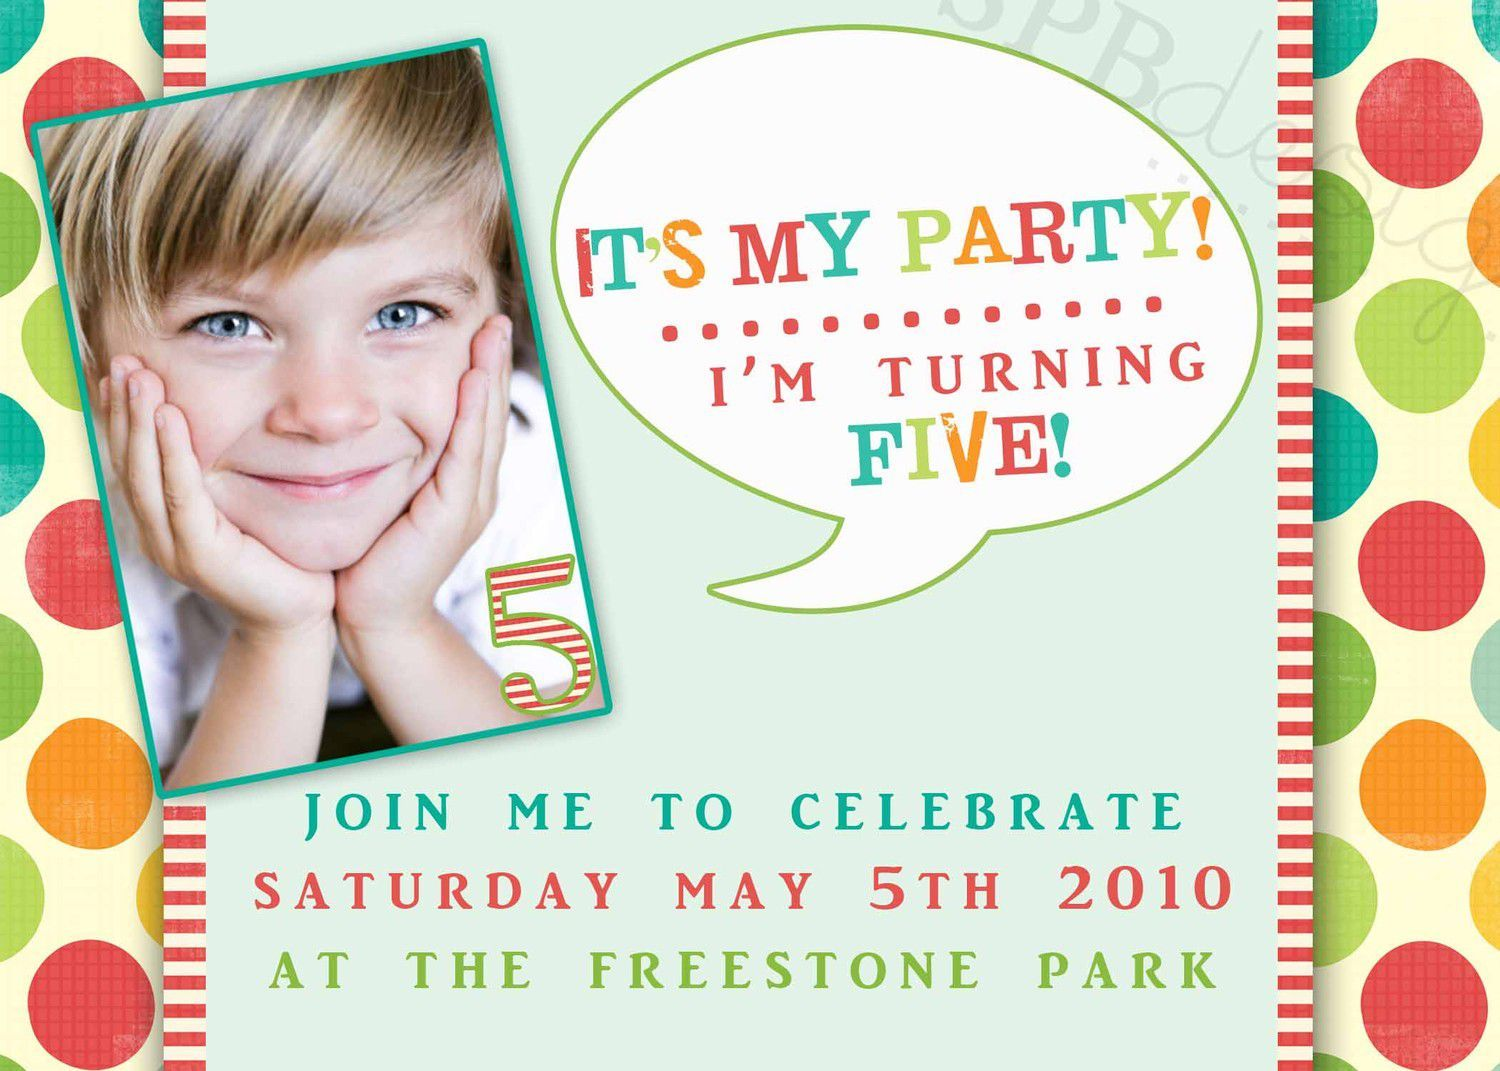 birthday invitation wording for 1 year old boy | birthday ...